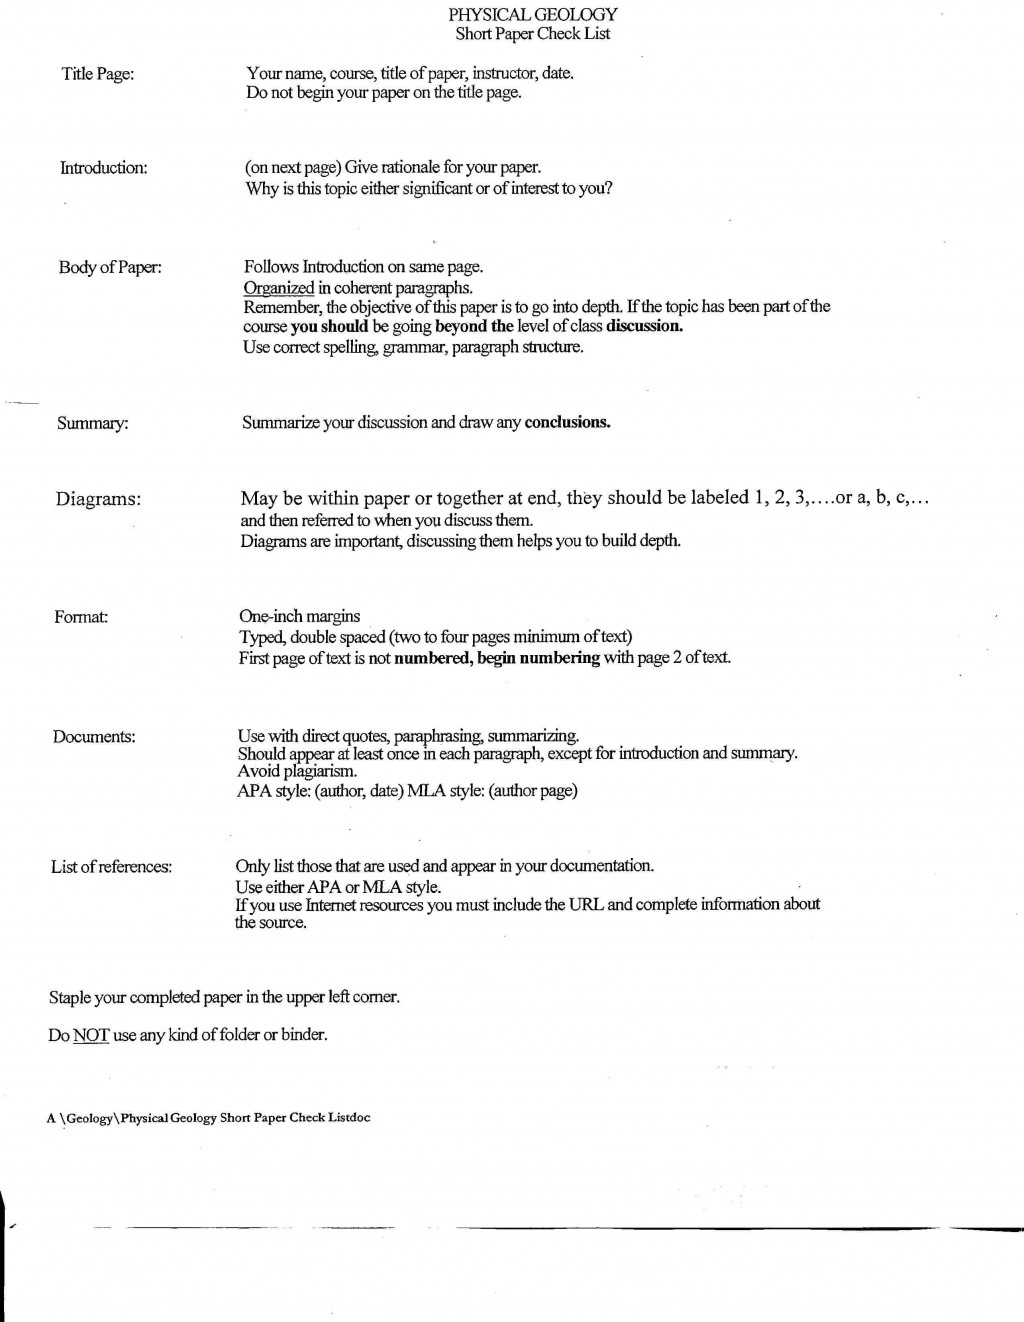 007 Research Paper Short Checklist Topics For Stupendous College Writing Argumentative Large